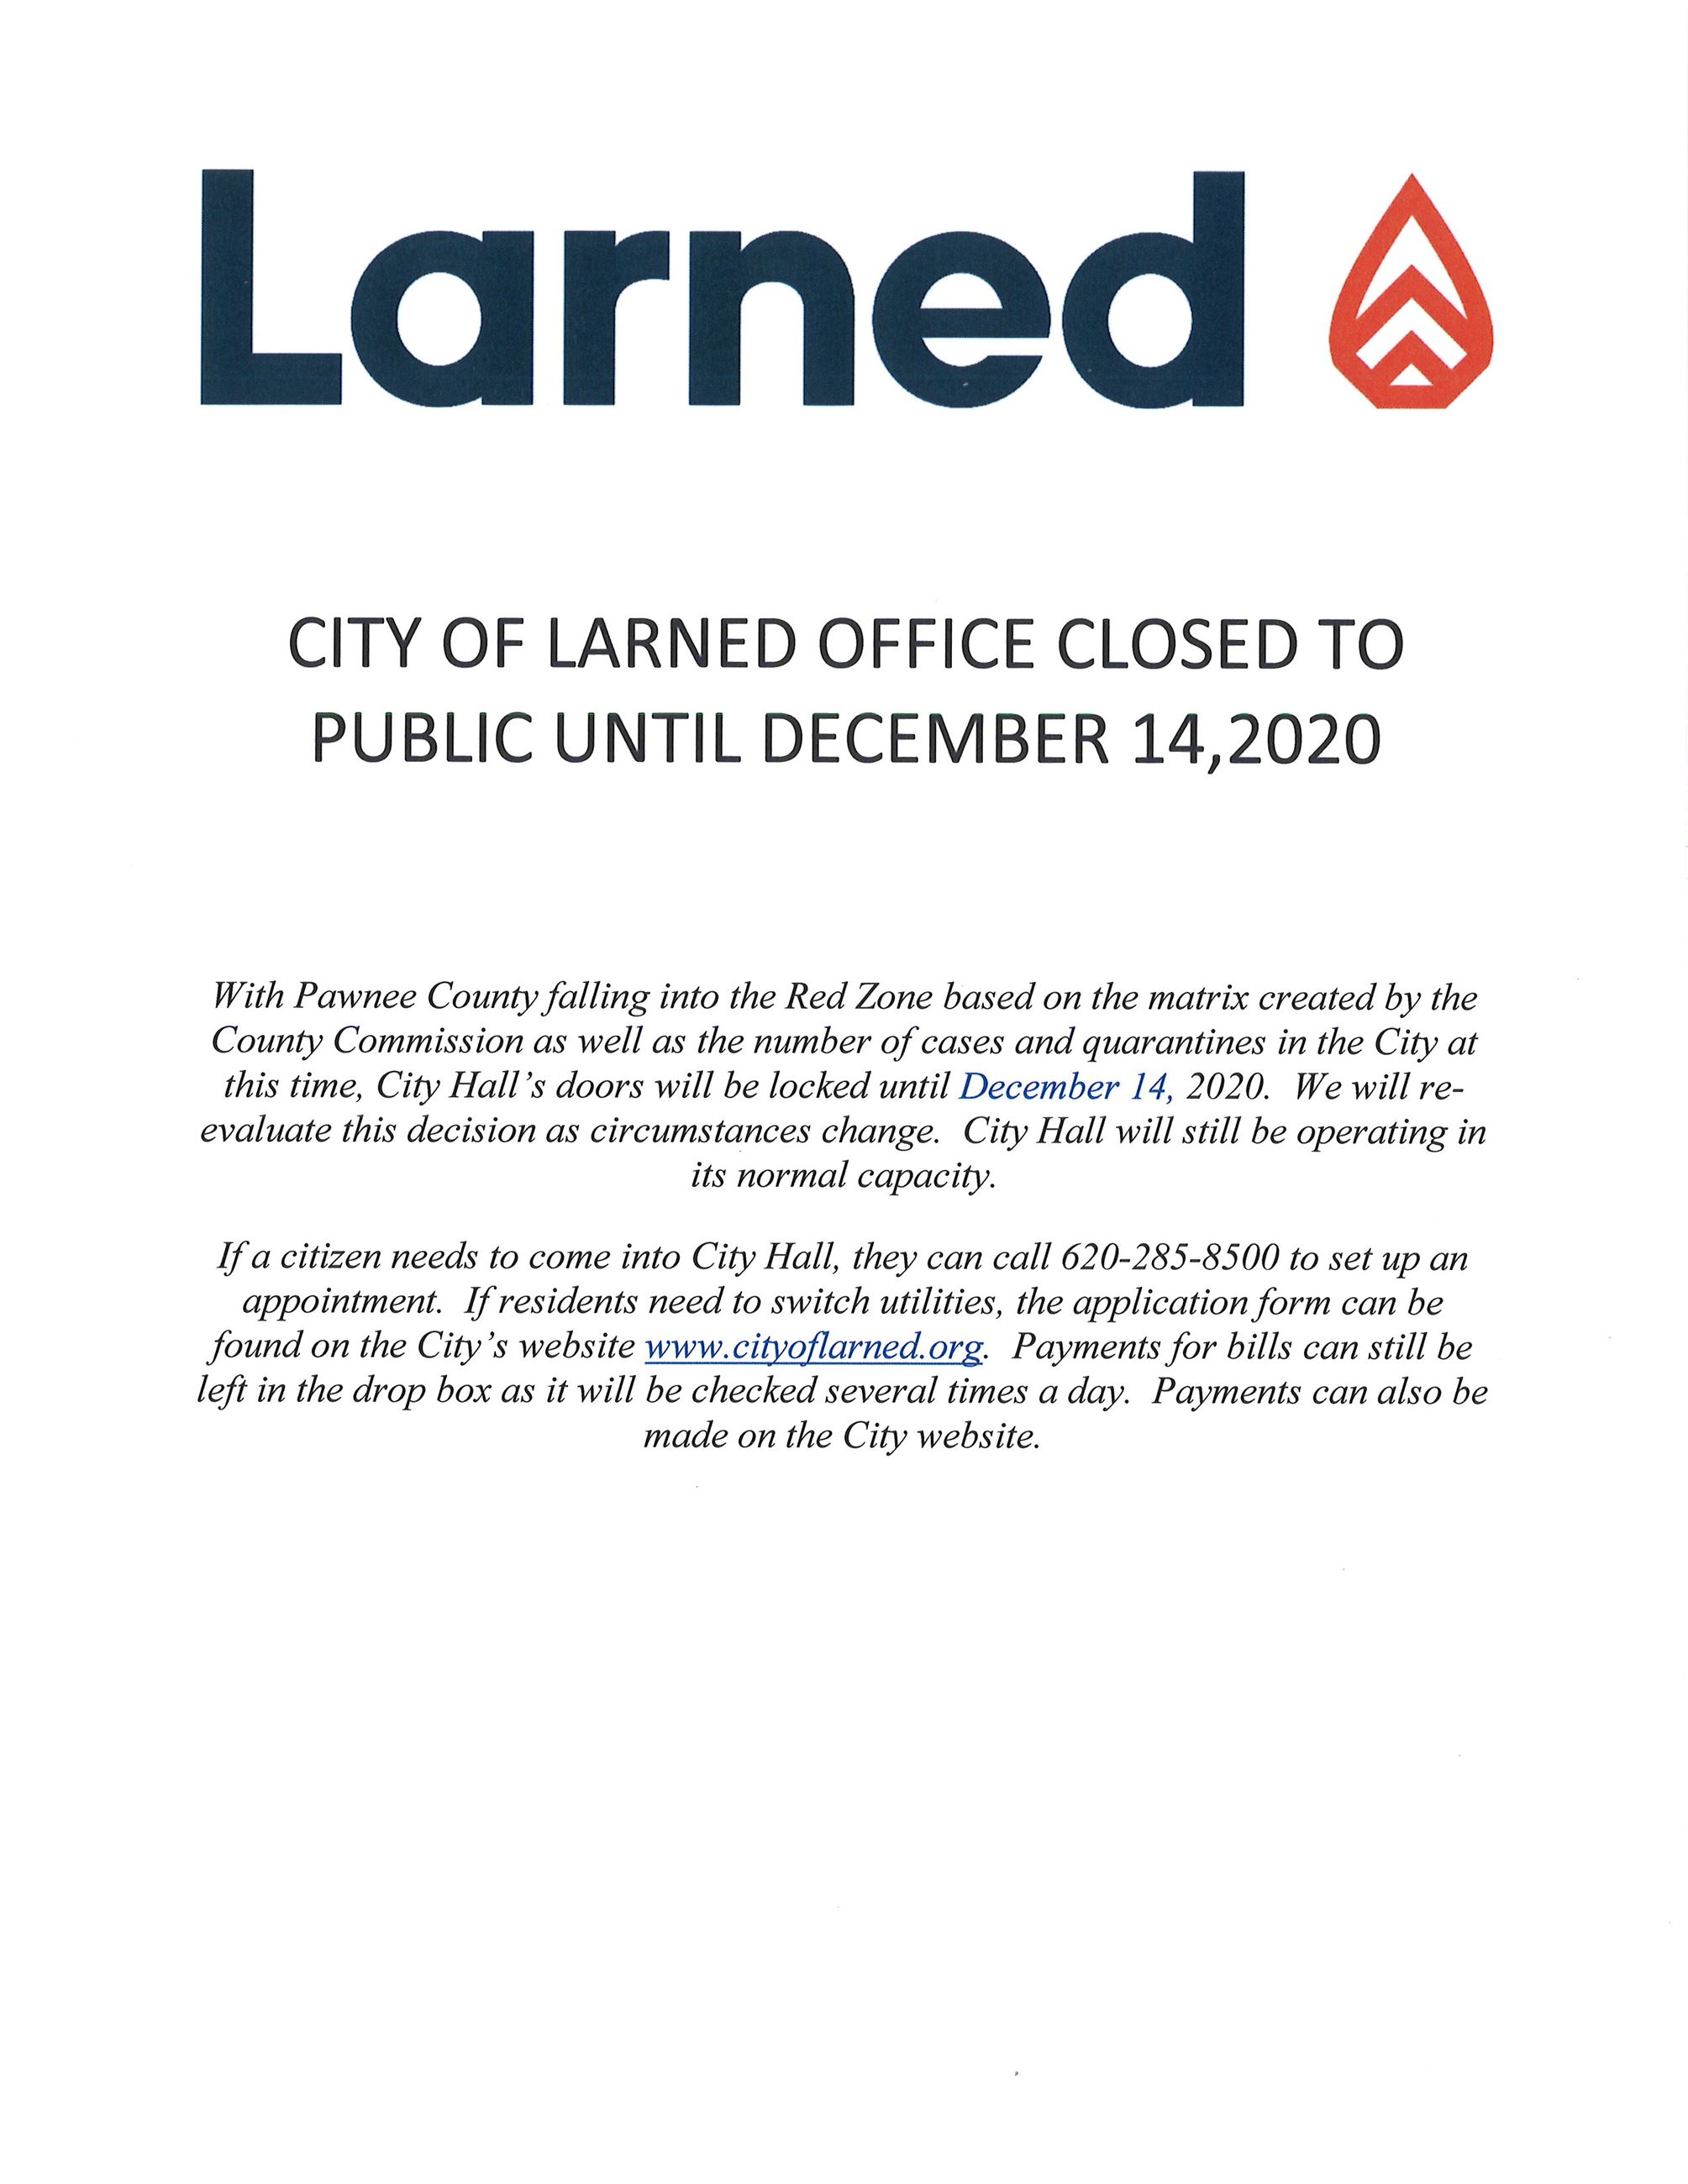 Office closing 12-14-2020